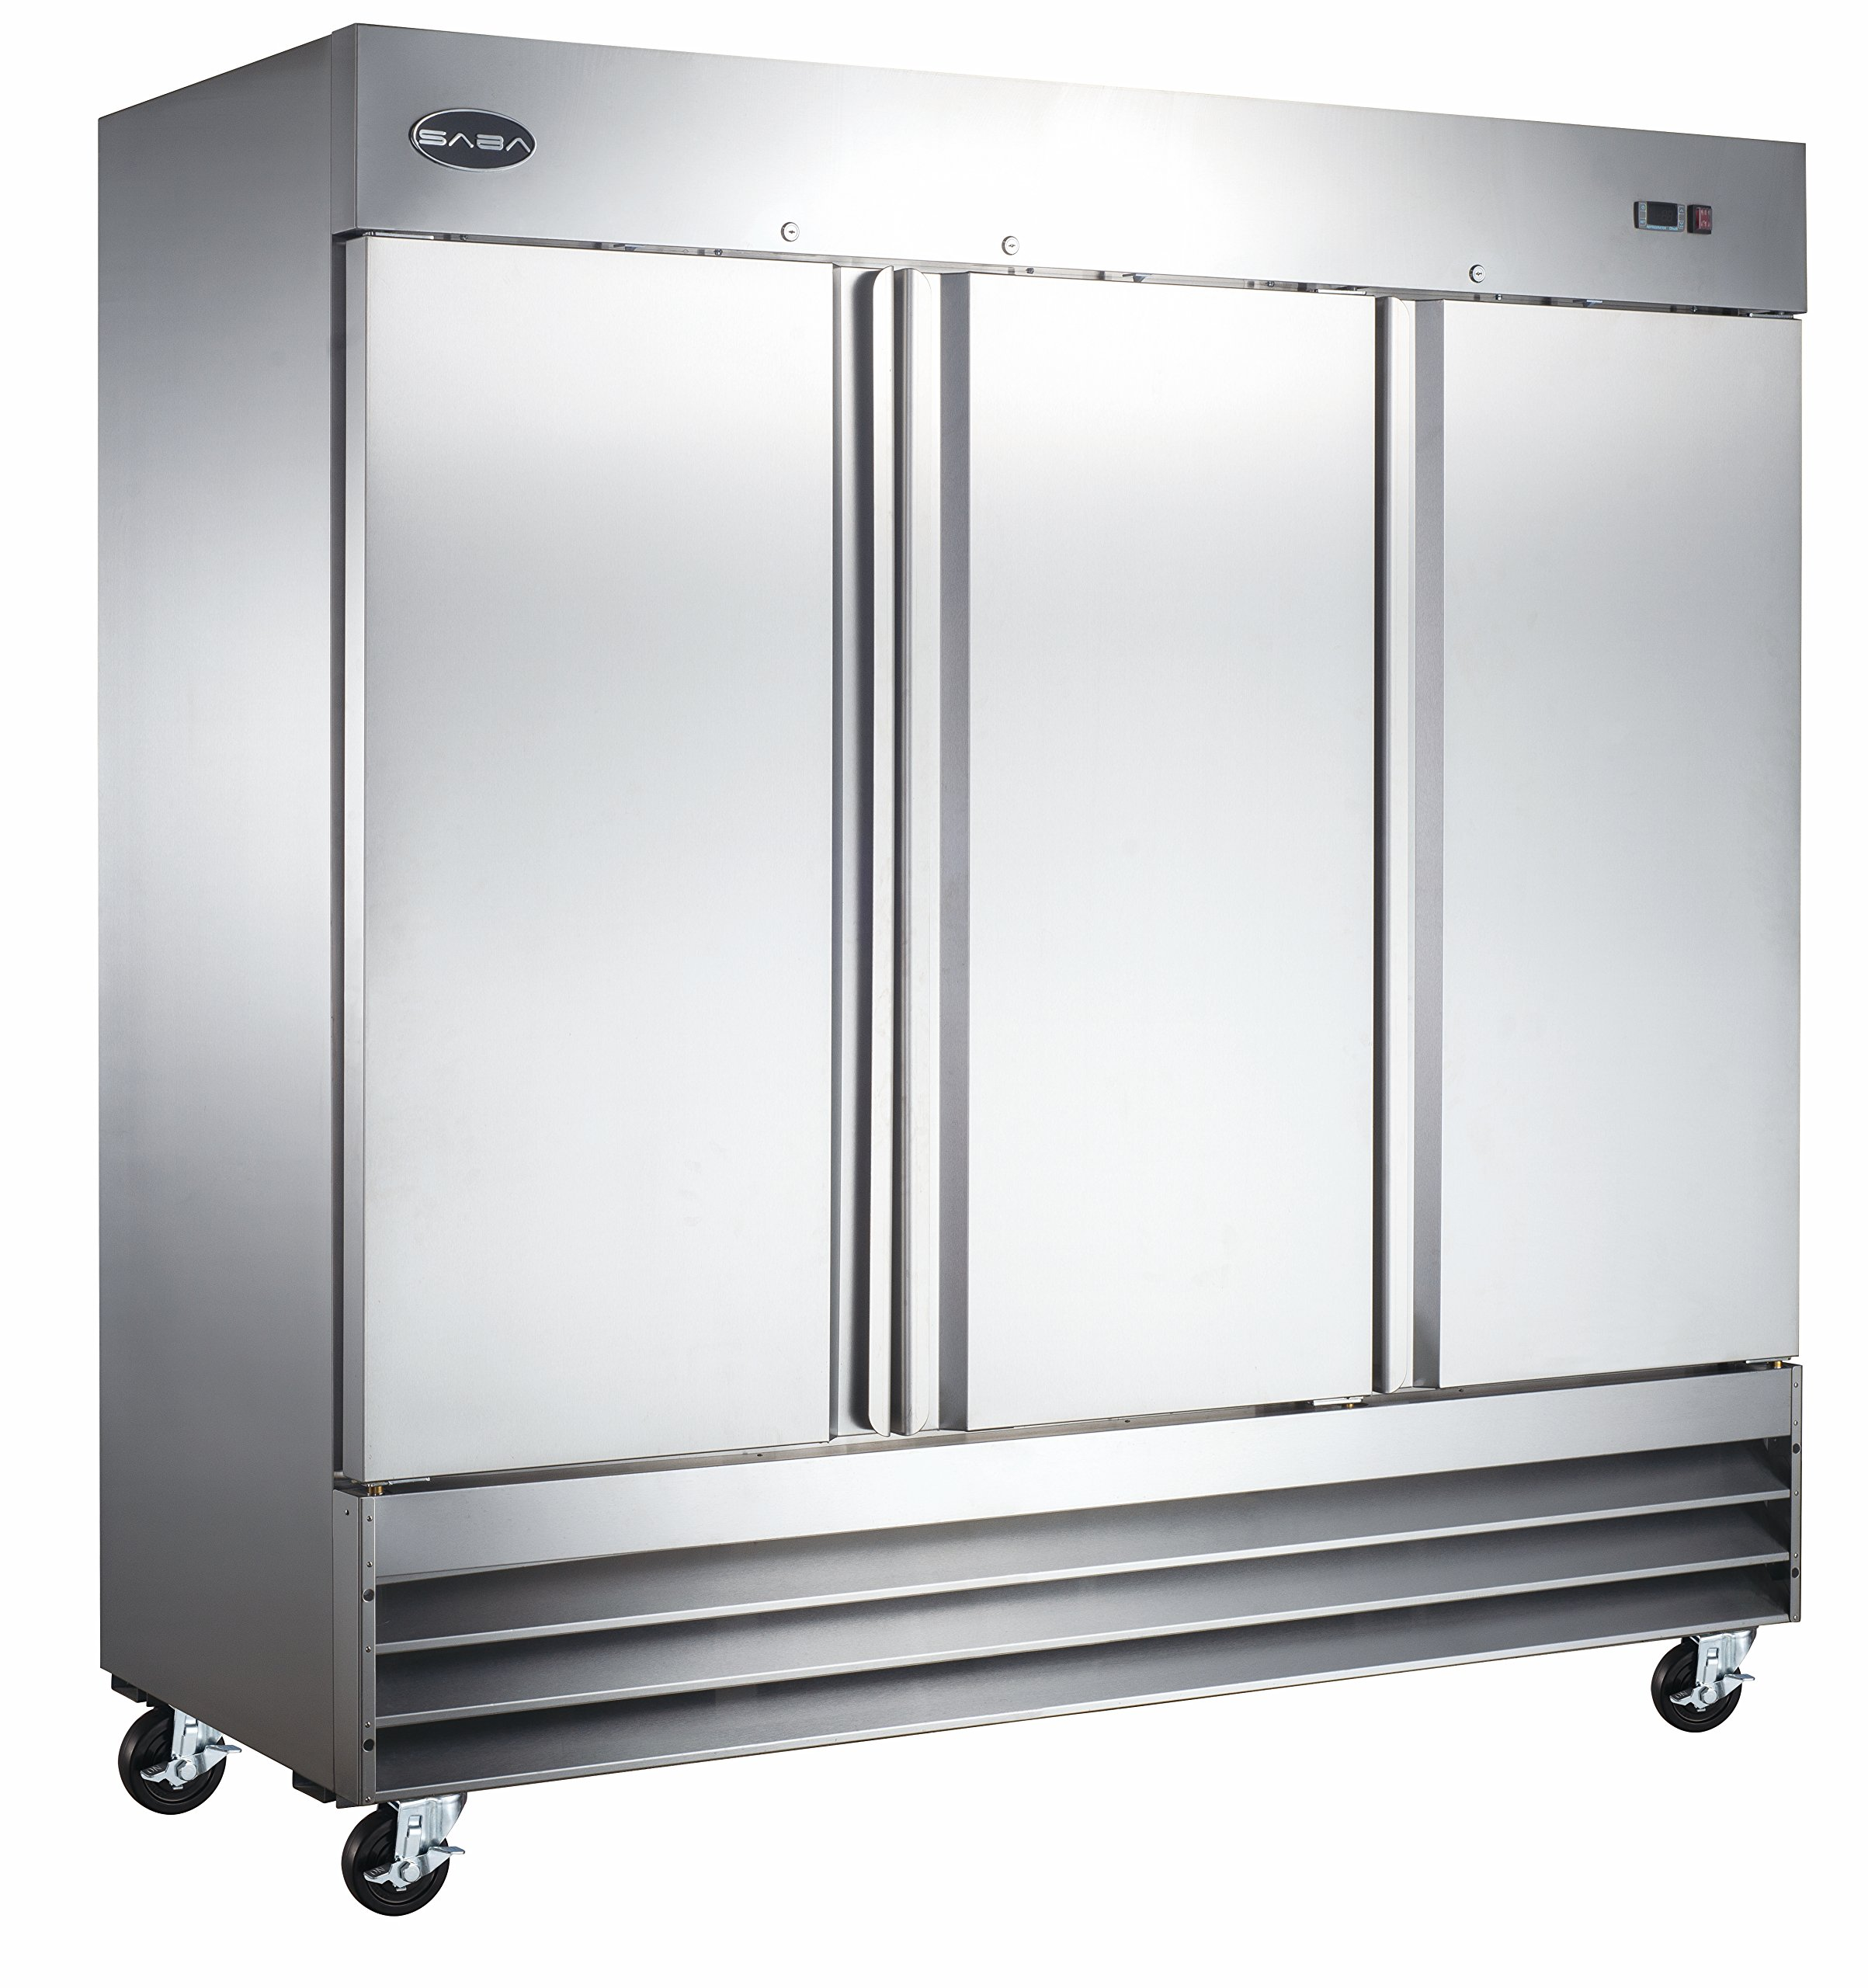 Heavy Duty Commercial Stainless Steel Reach-In Freezer (72'' Three Solid Doors)